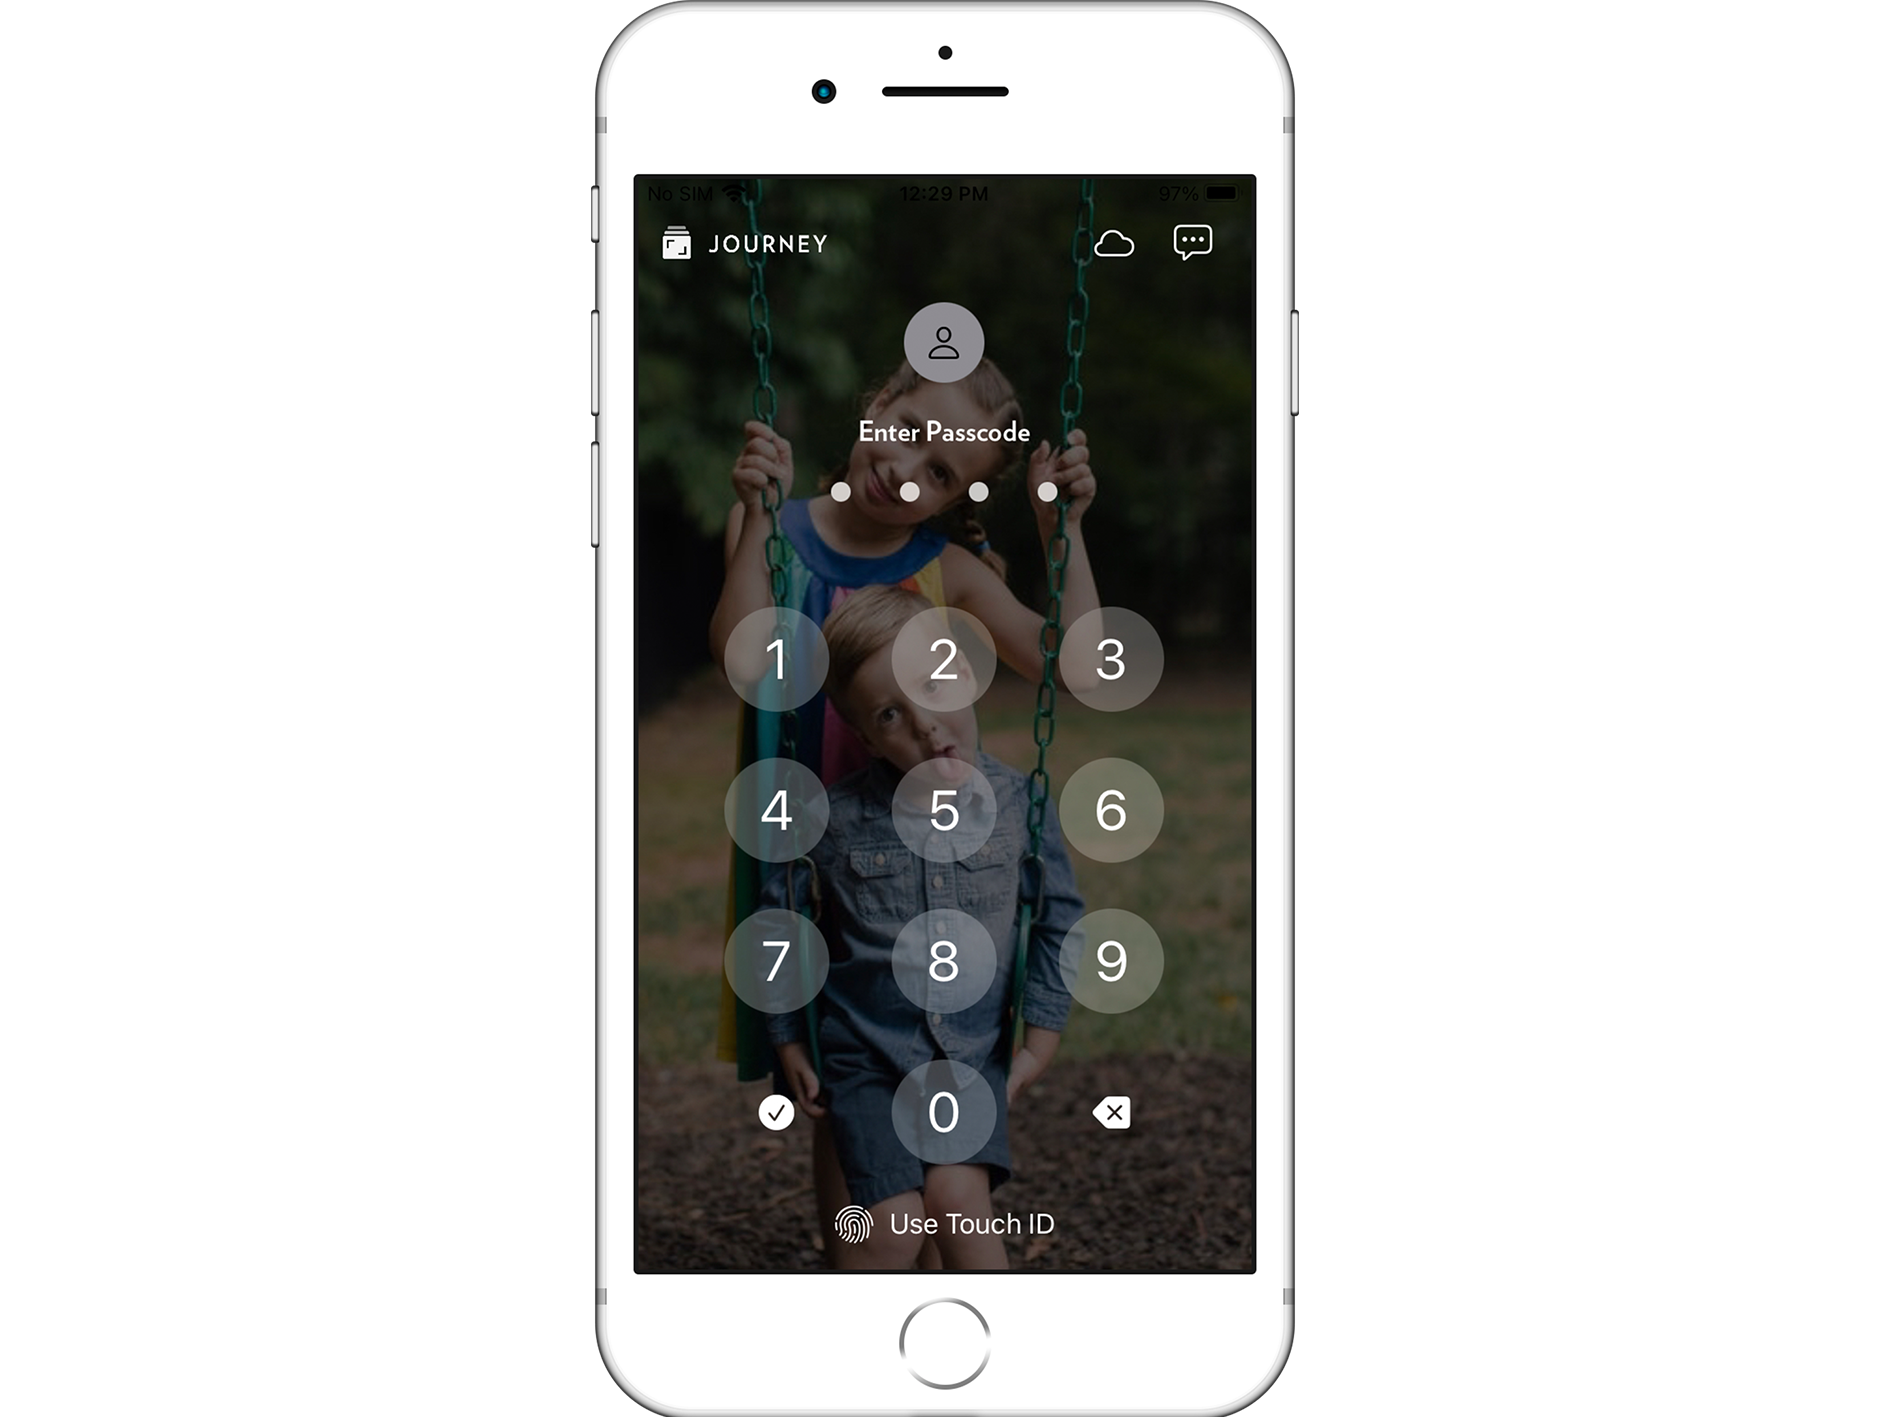 Journey's passcode and Apple Touch ID security feature